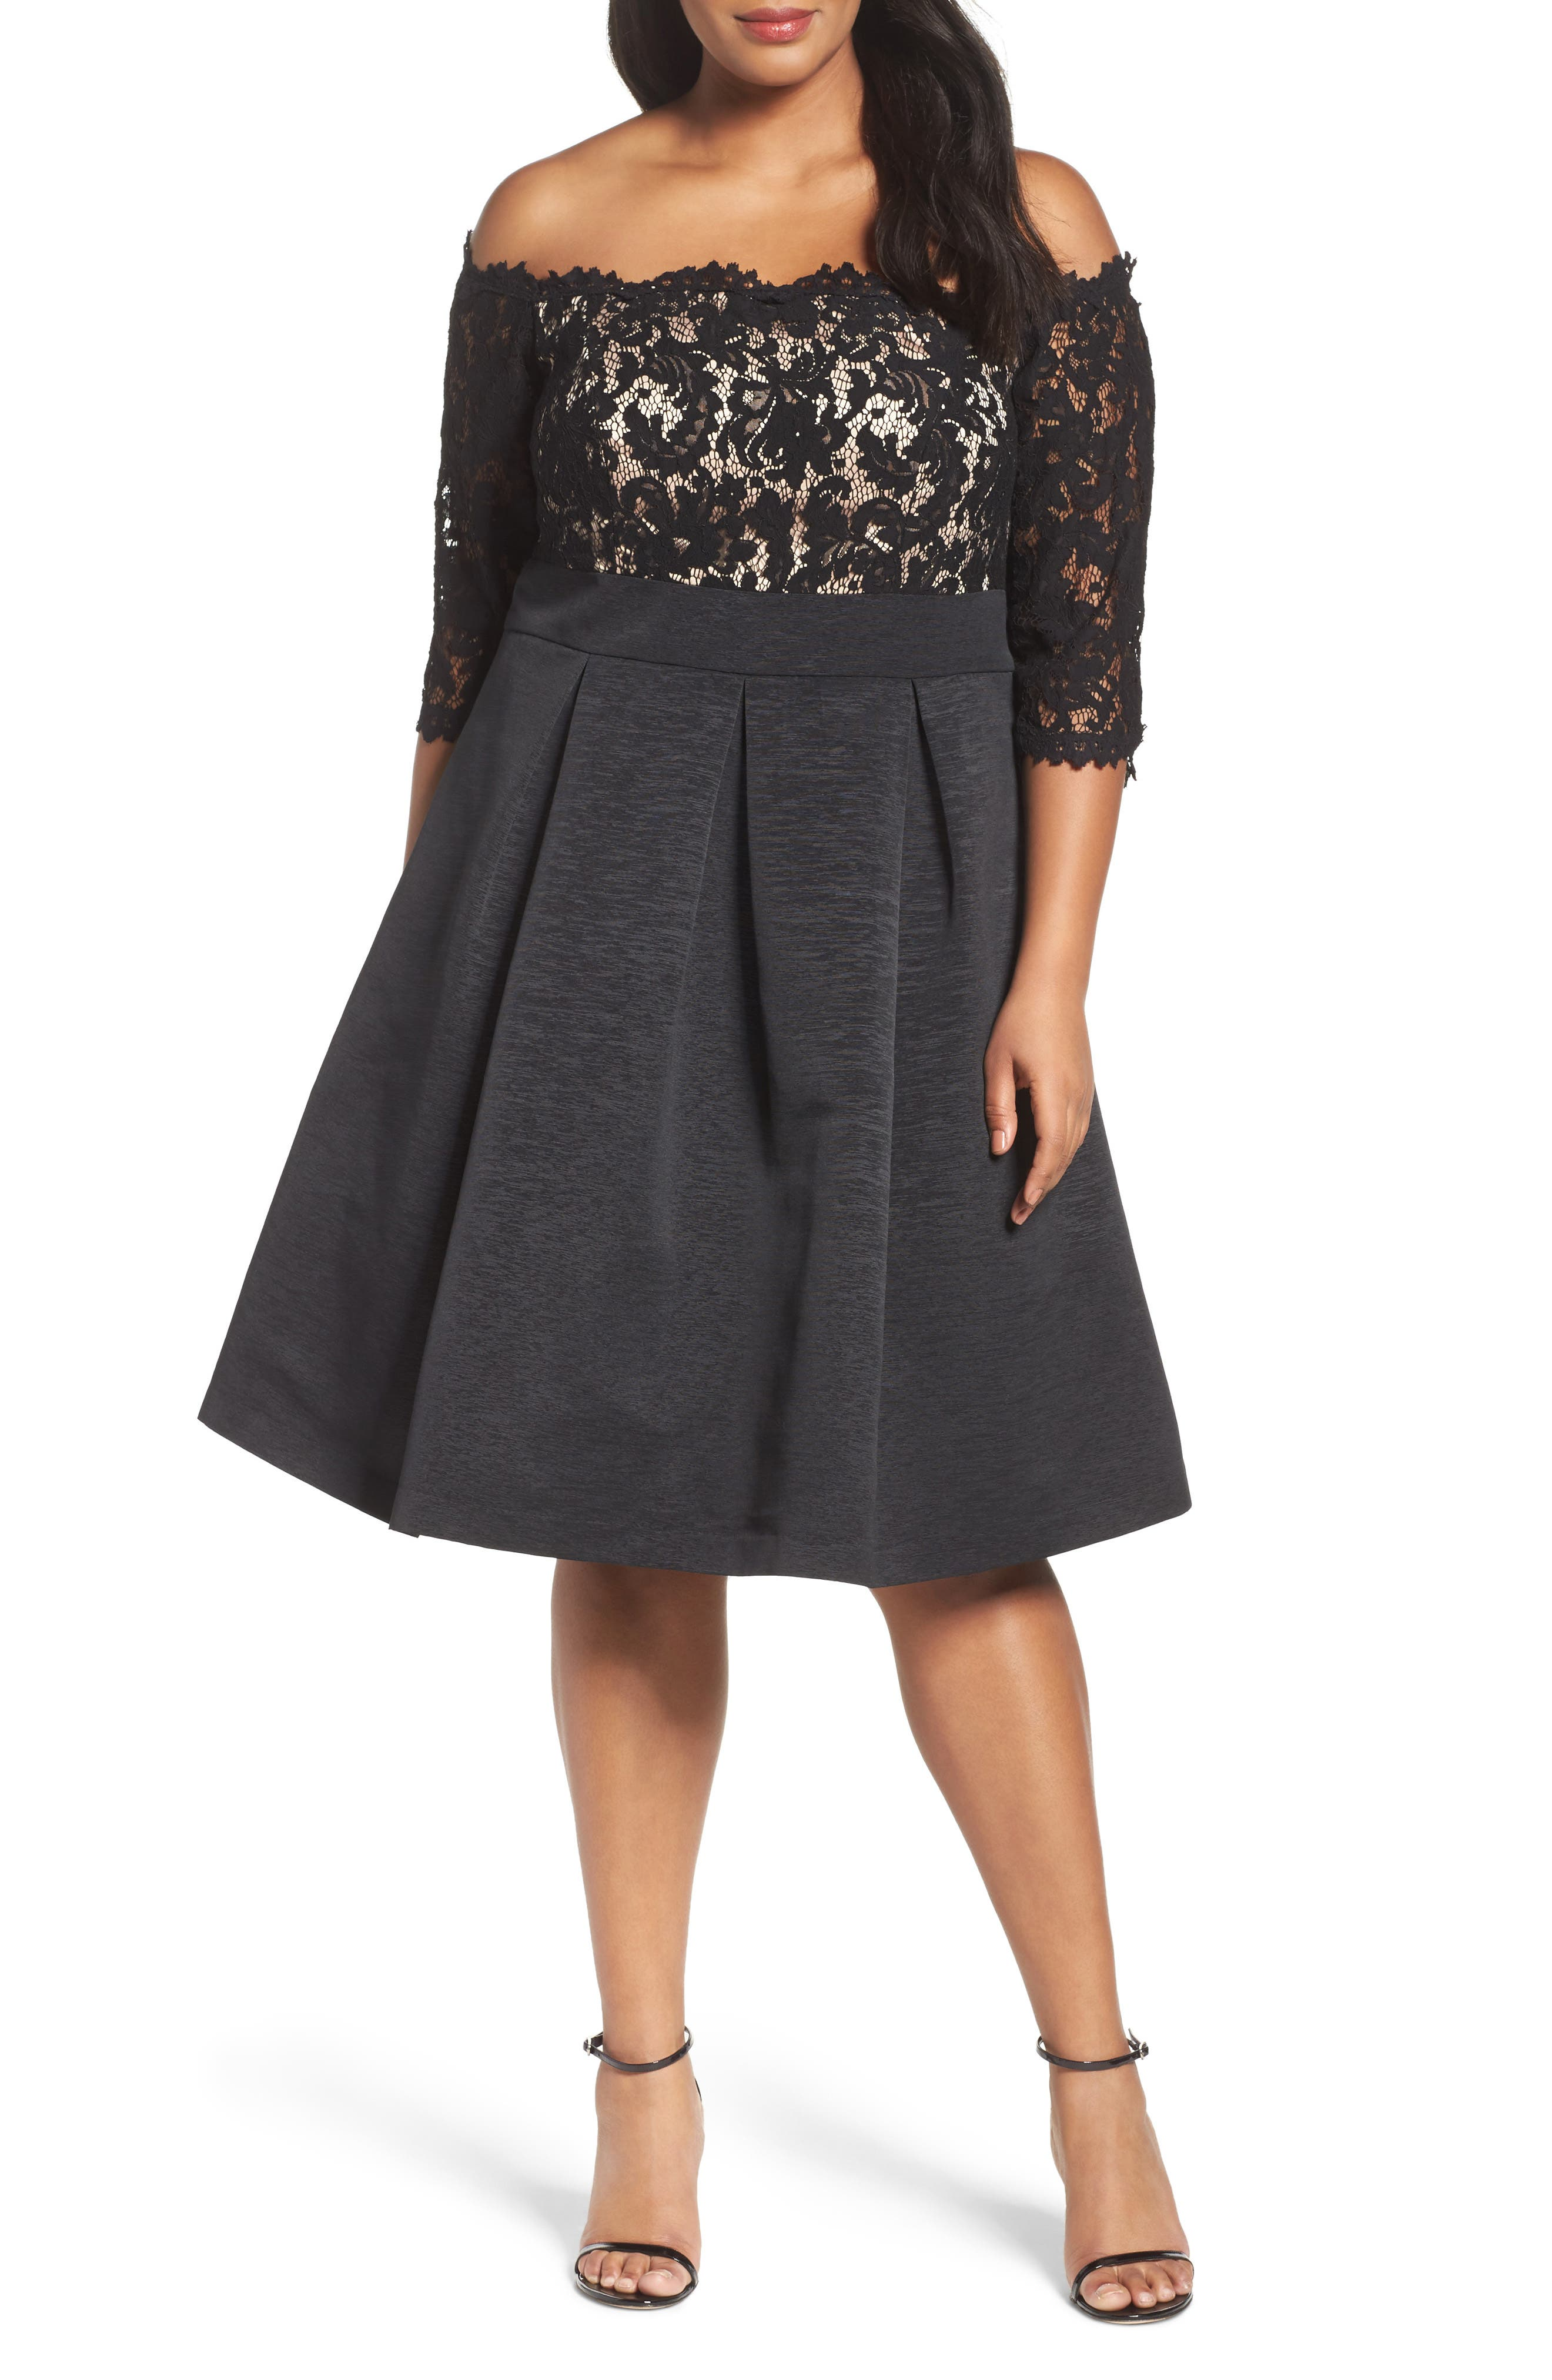 Plus Size Cocktail Dresses with a White Overlay